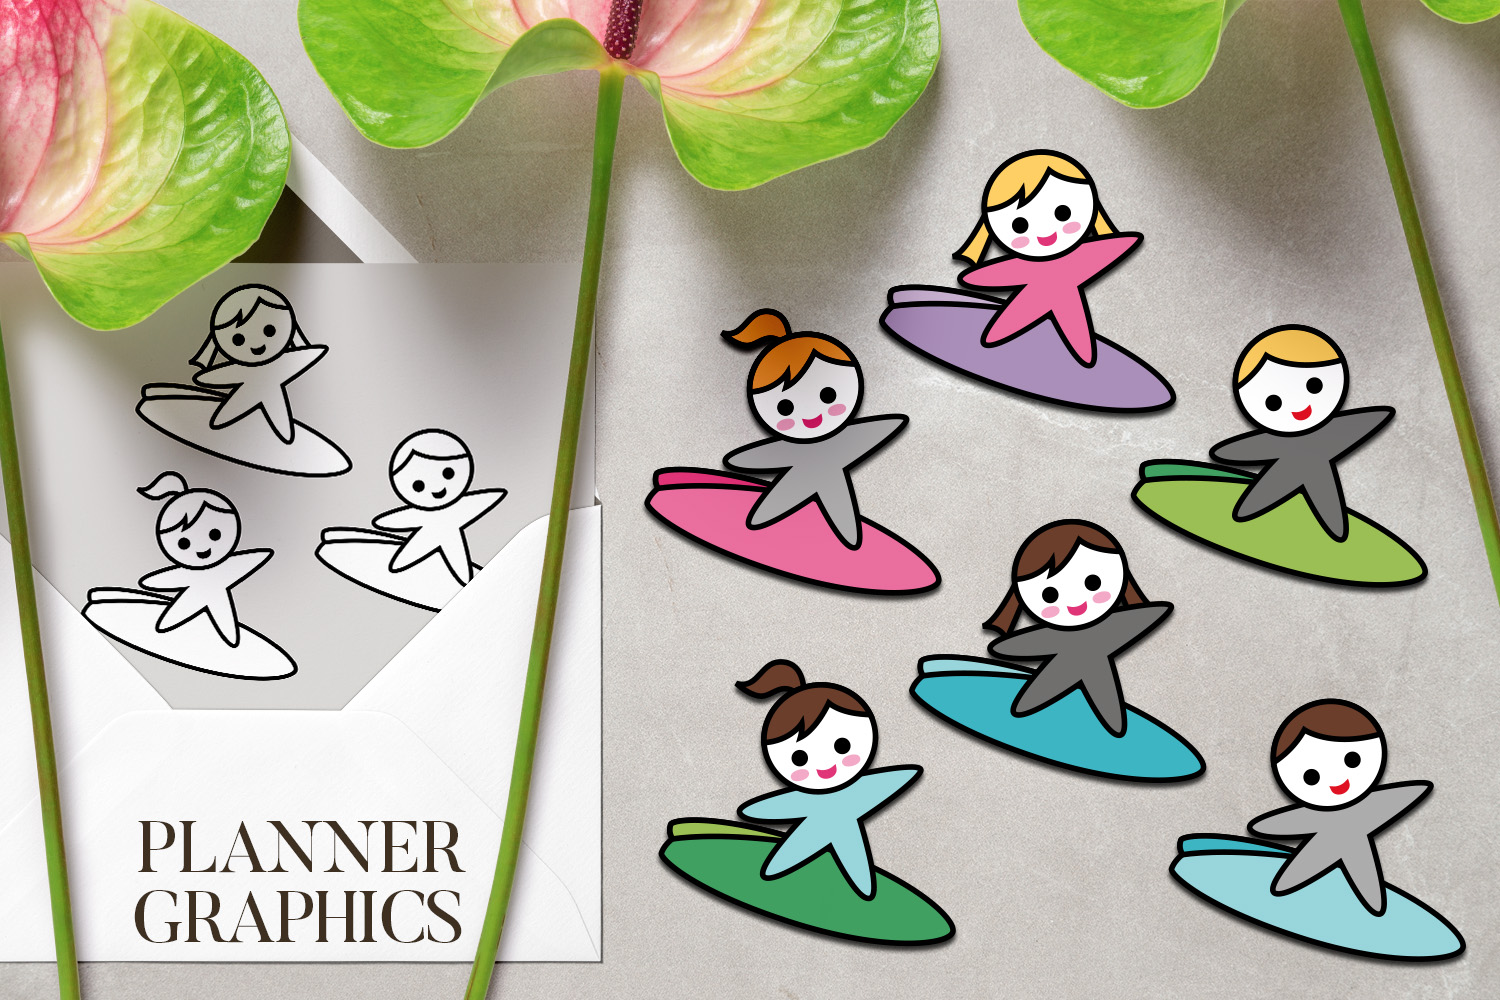 Hobby illustrations bundle - planner sticker graphics example image 9